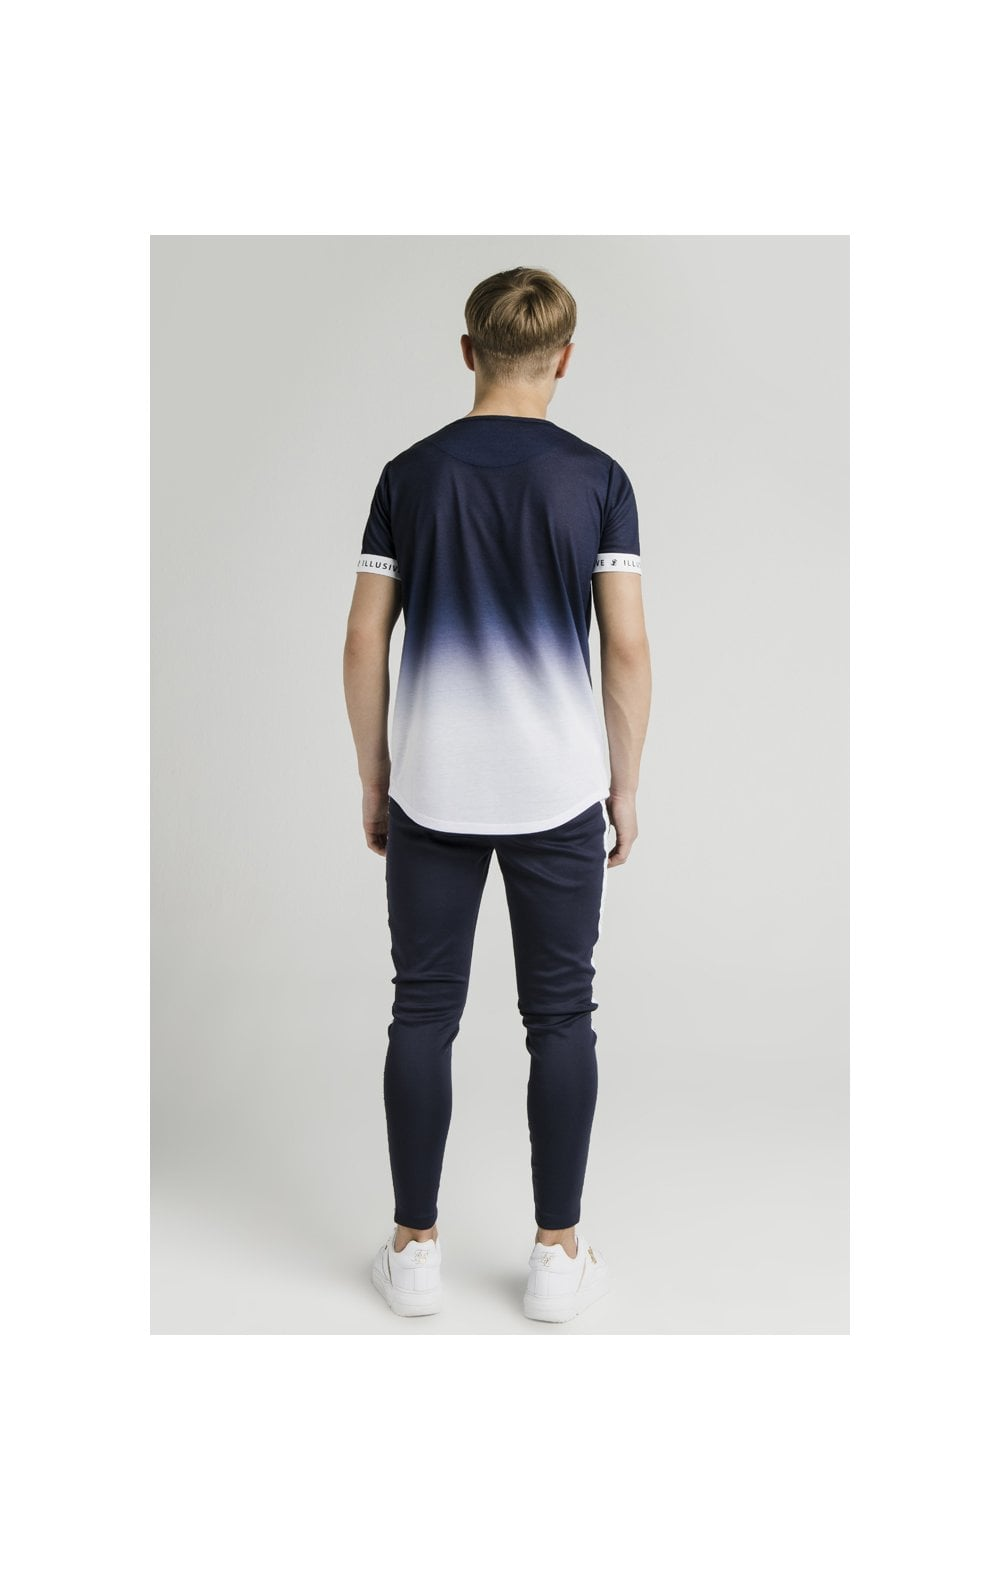 Load image into Gallery viewer, Illusive London Athlete Joggers - Navy & White (6)